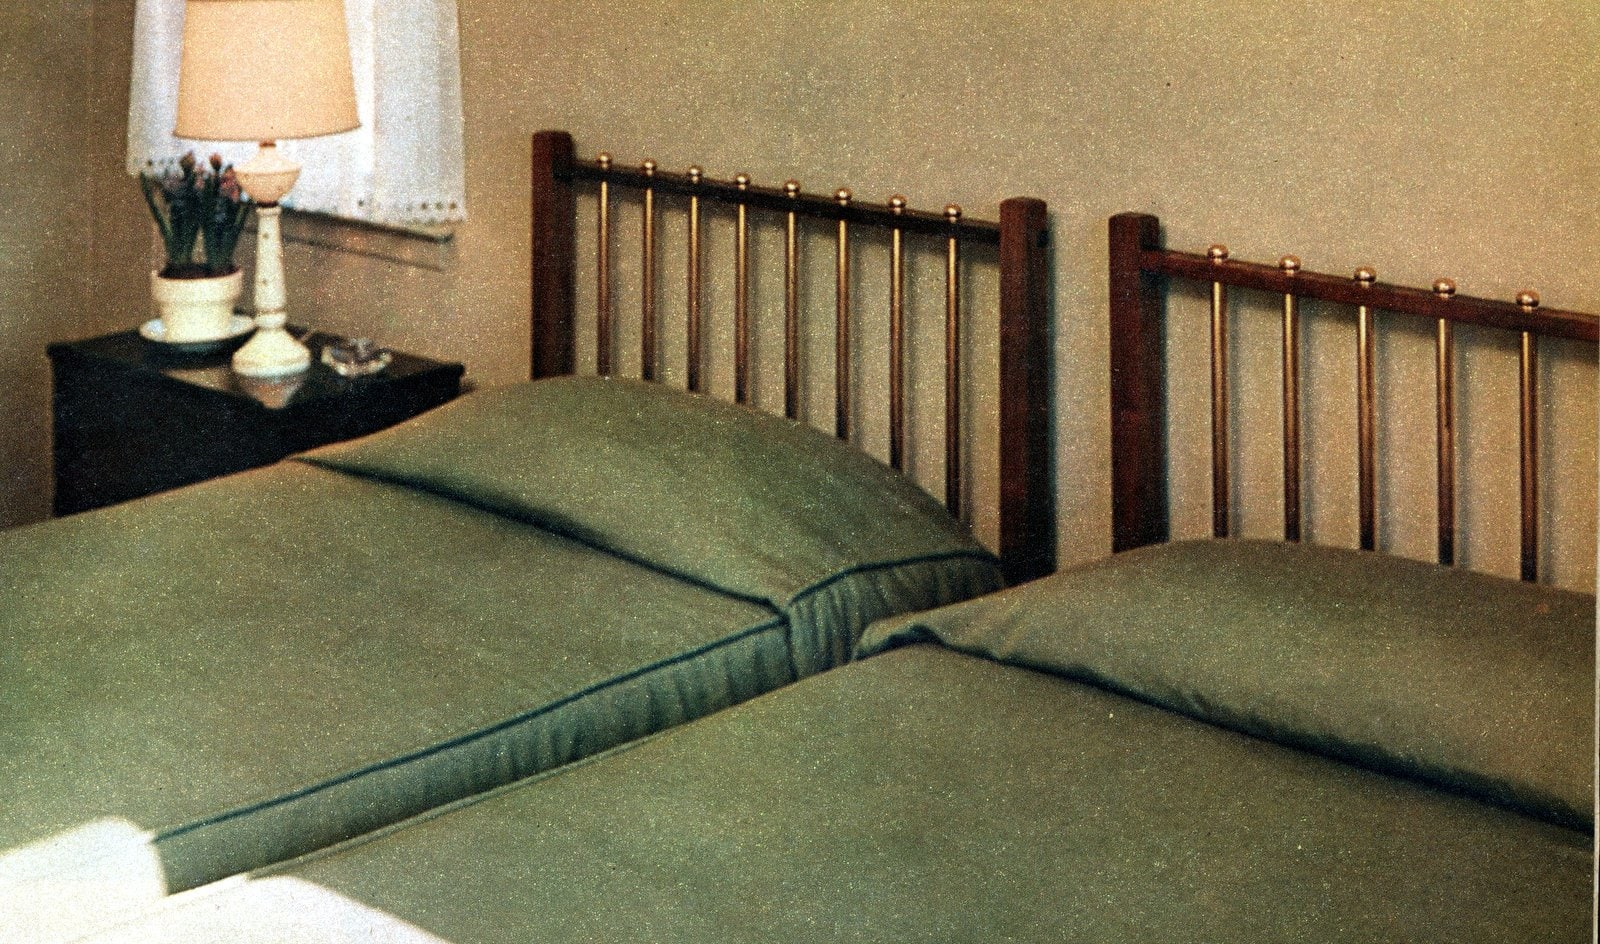 DIY bed headboard with shiny brass curtain rods (1956)